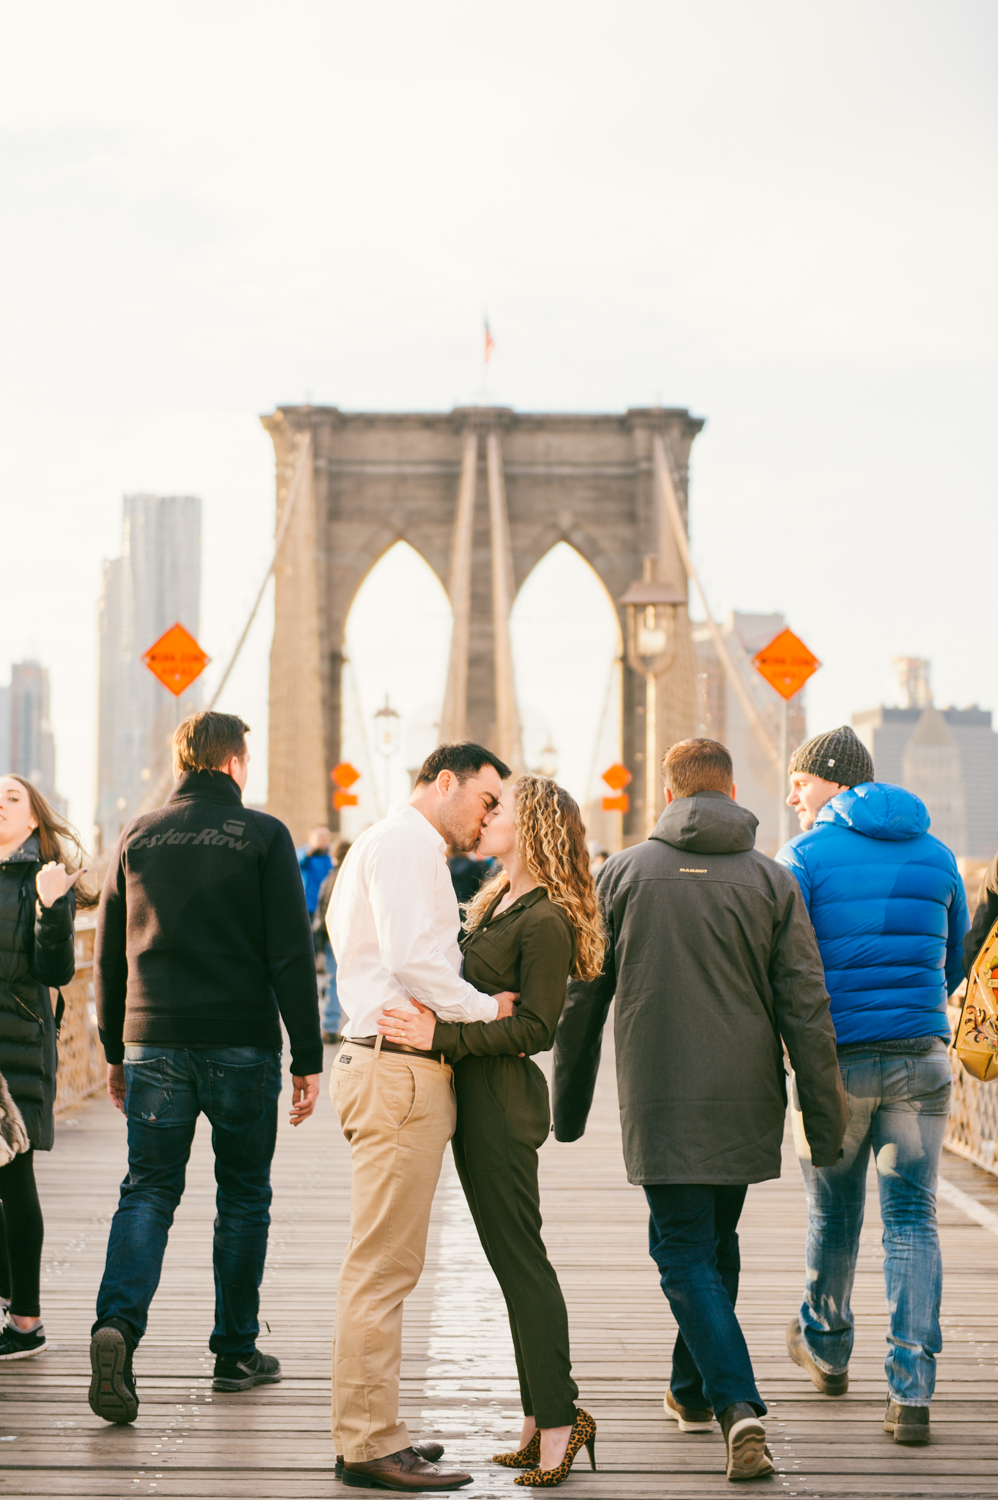 DUMBO.BrooklynBridgePark.FineArtWeddingPhotographer.KatHarris12.jpg